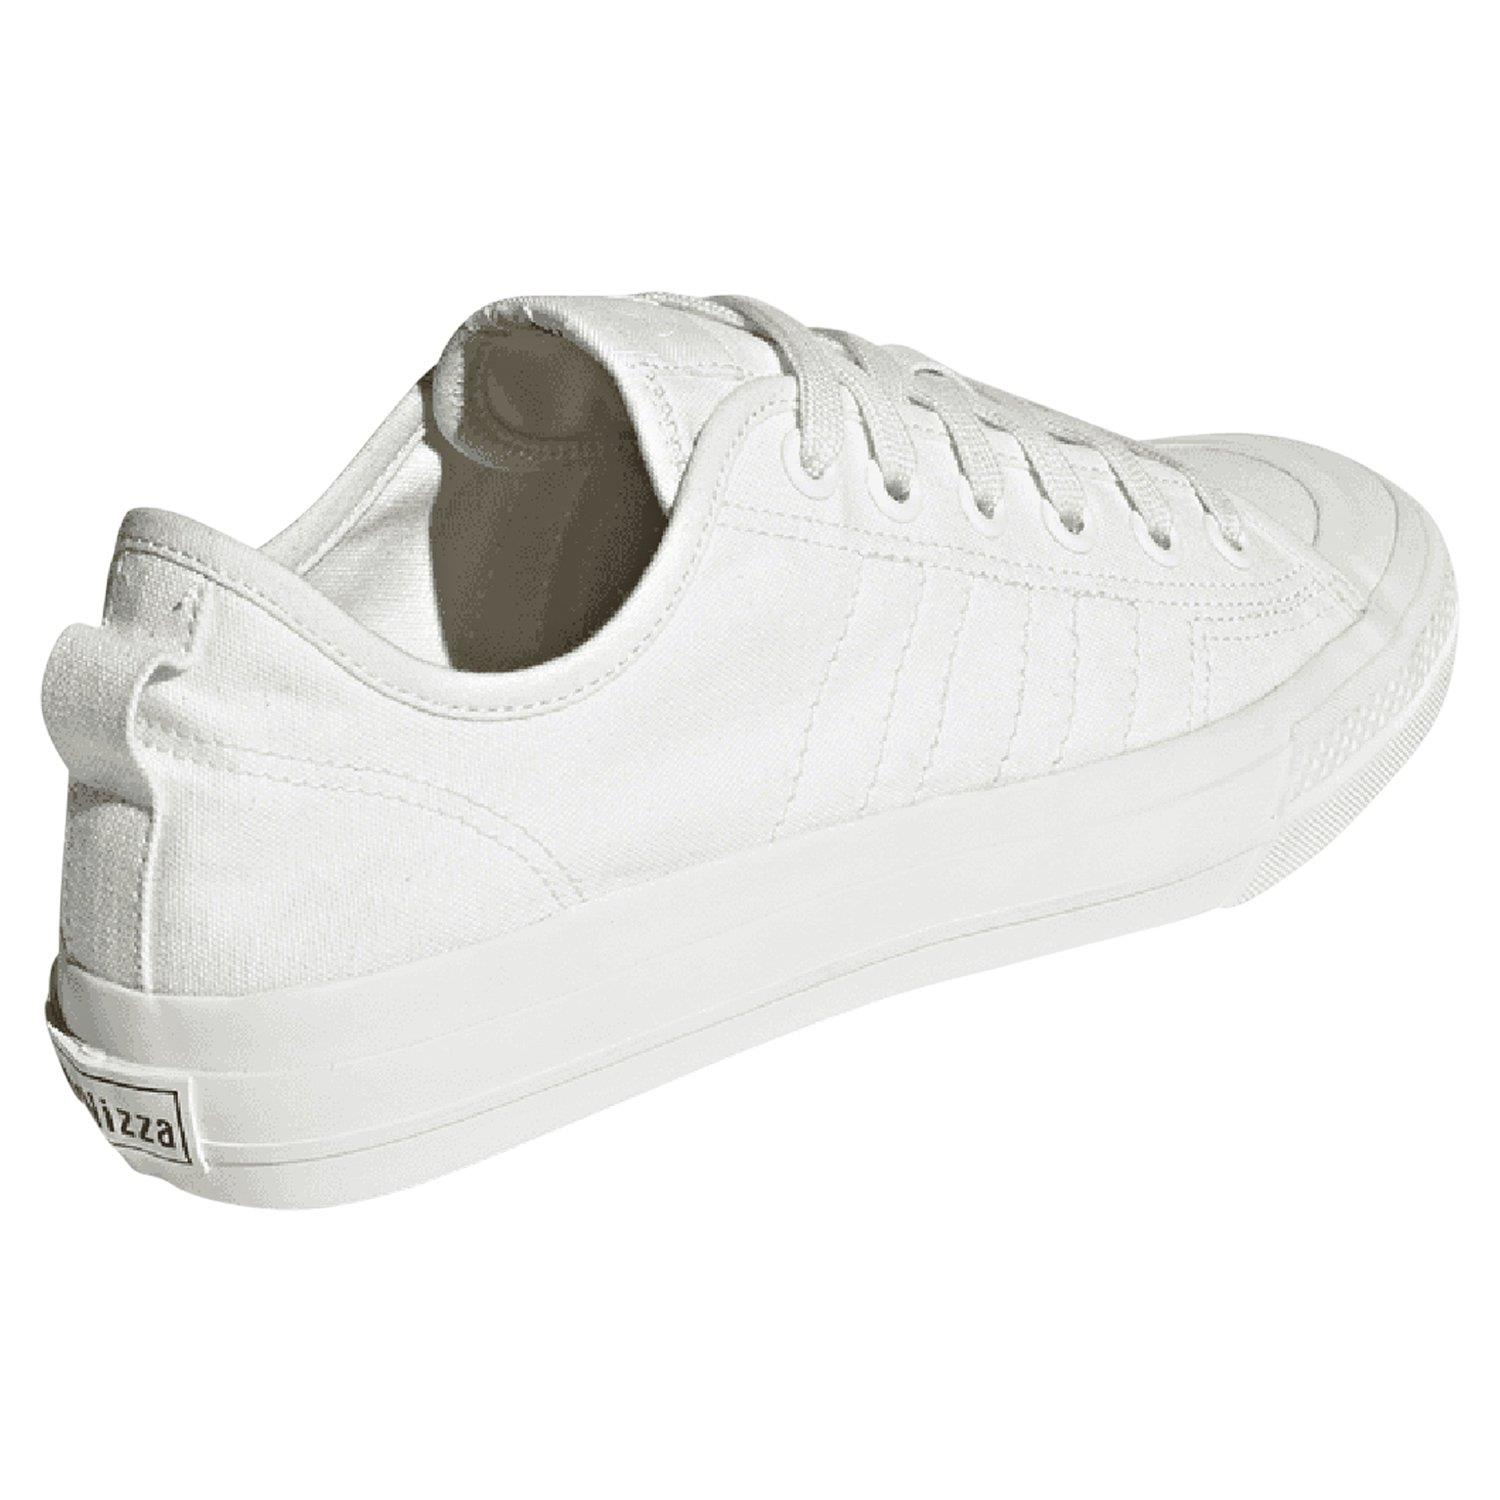 fuego Ser metodología  adidas ORIGINALS NIZZA LO RF WHITE TRAINERS SKATEBOARDING SHOES CANVAS  SNEAKERS | eBay